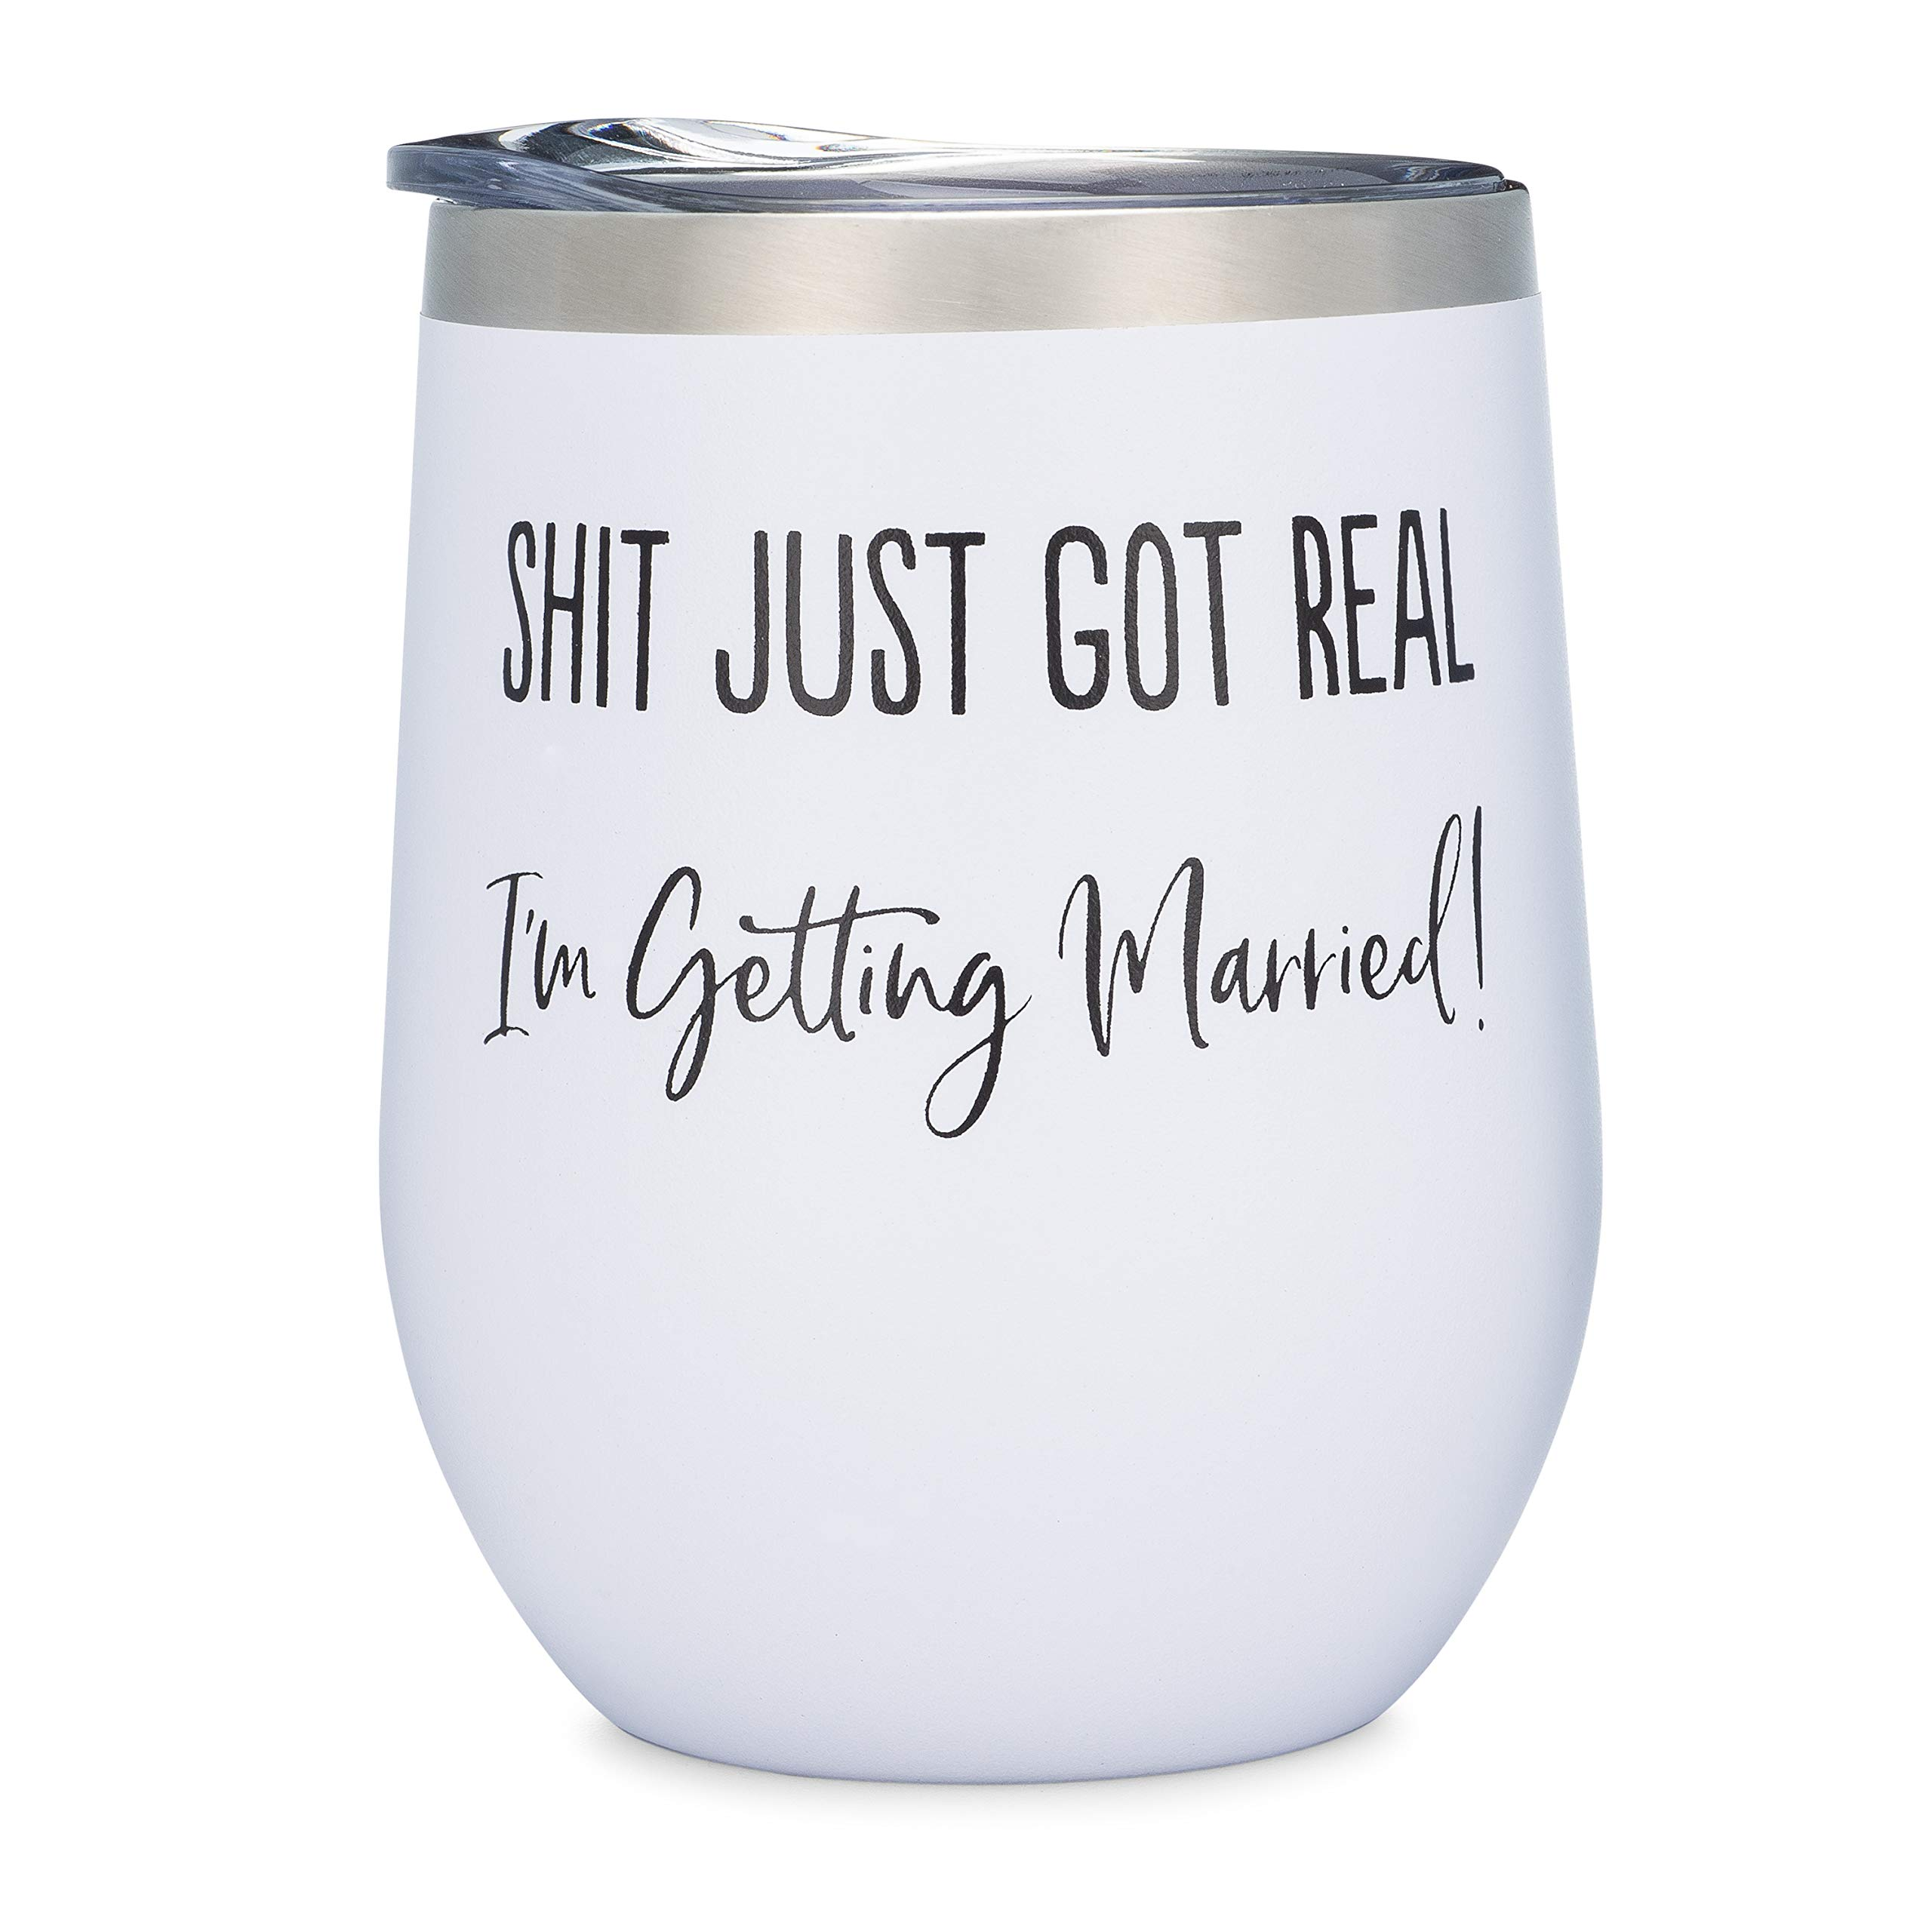 Funny Engagement Gift -''Shit Just Got Real'' - 12 oz Stainless Steel Wine Tumbler (White)